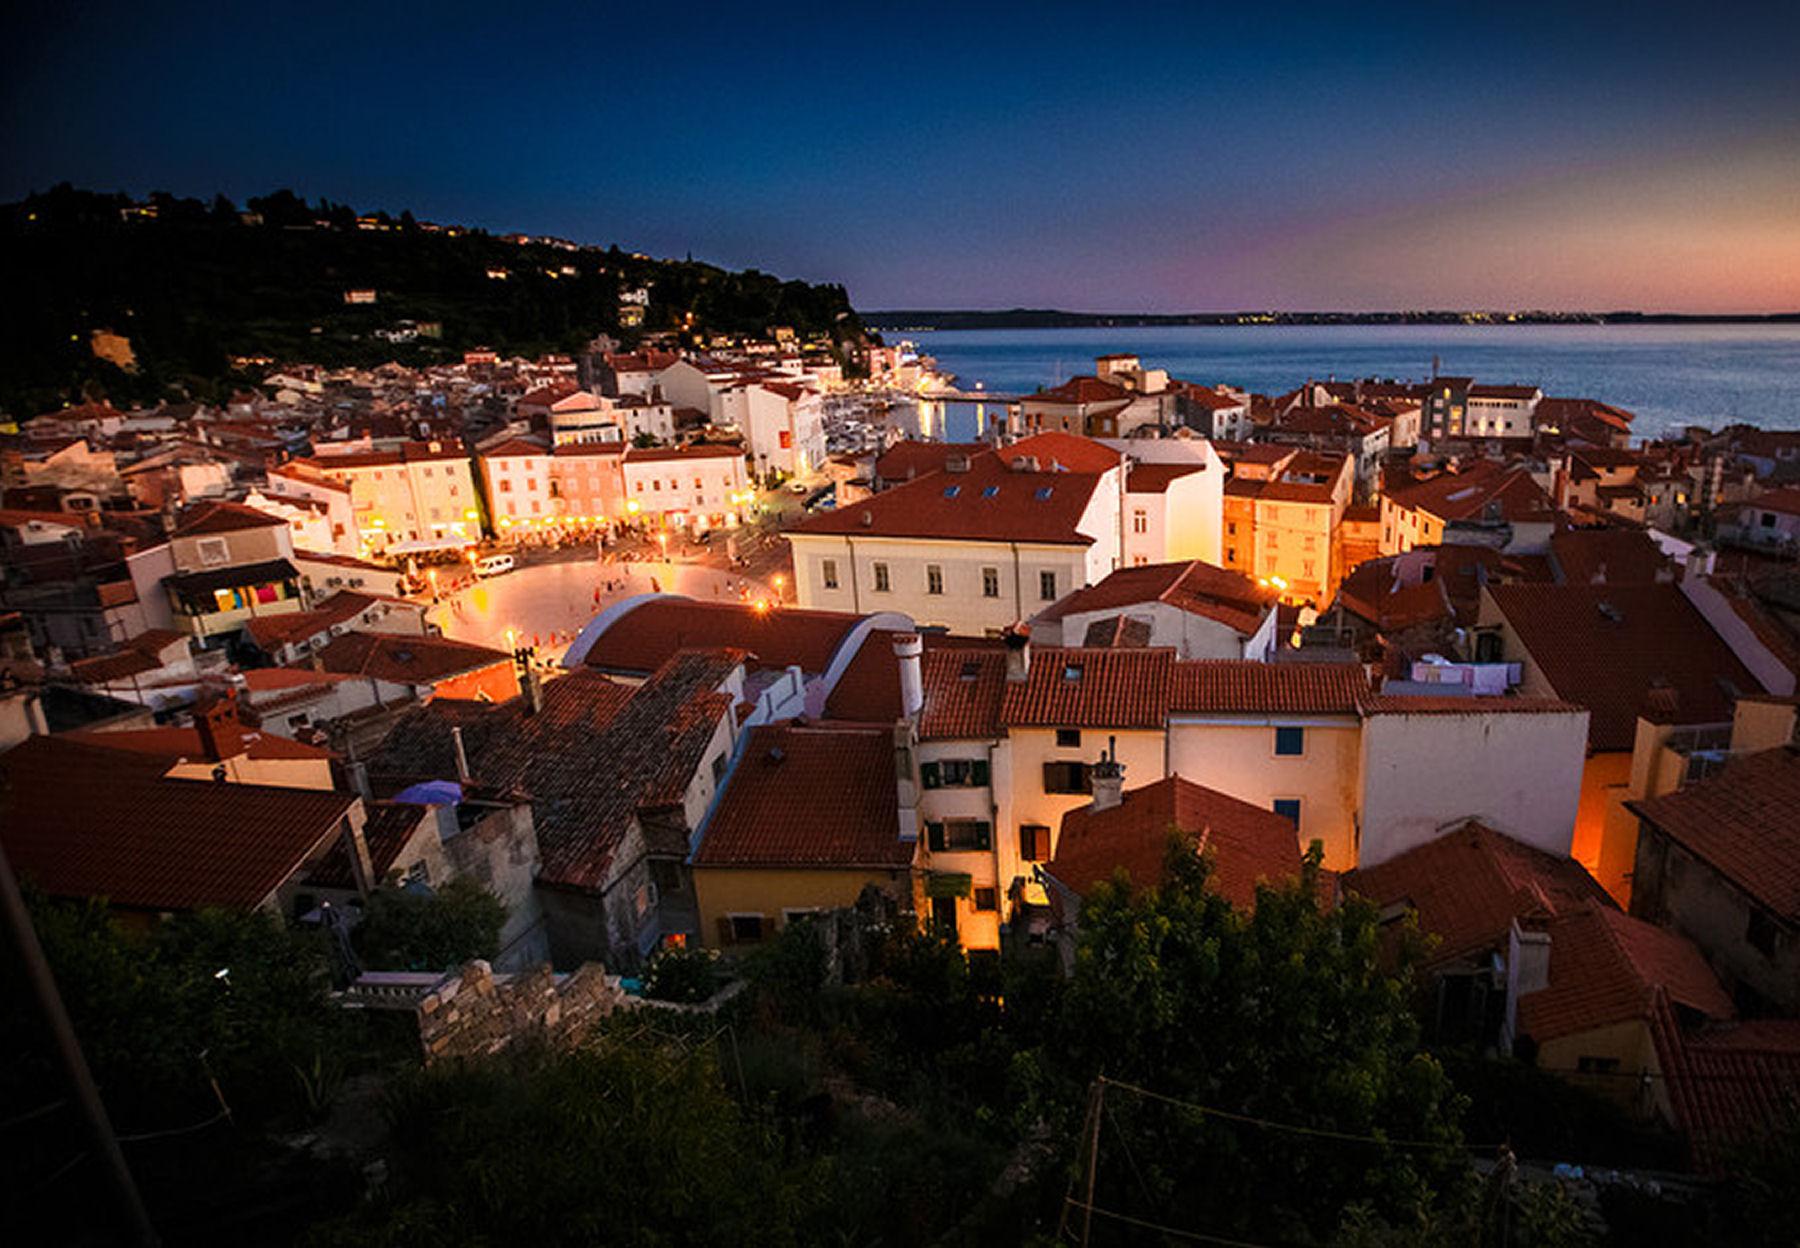 Piran is a lovely town especially when lit up at night